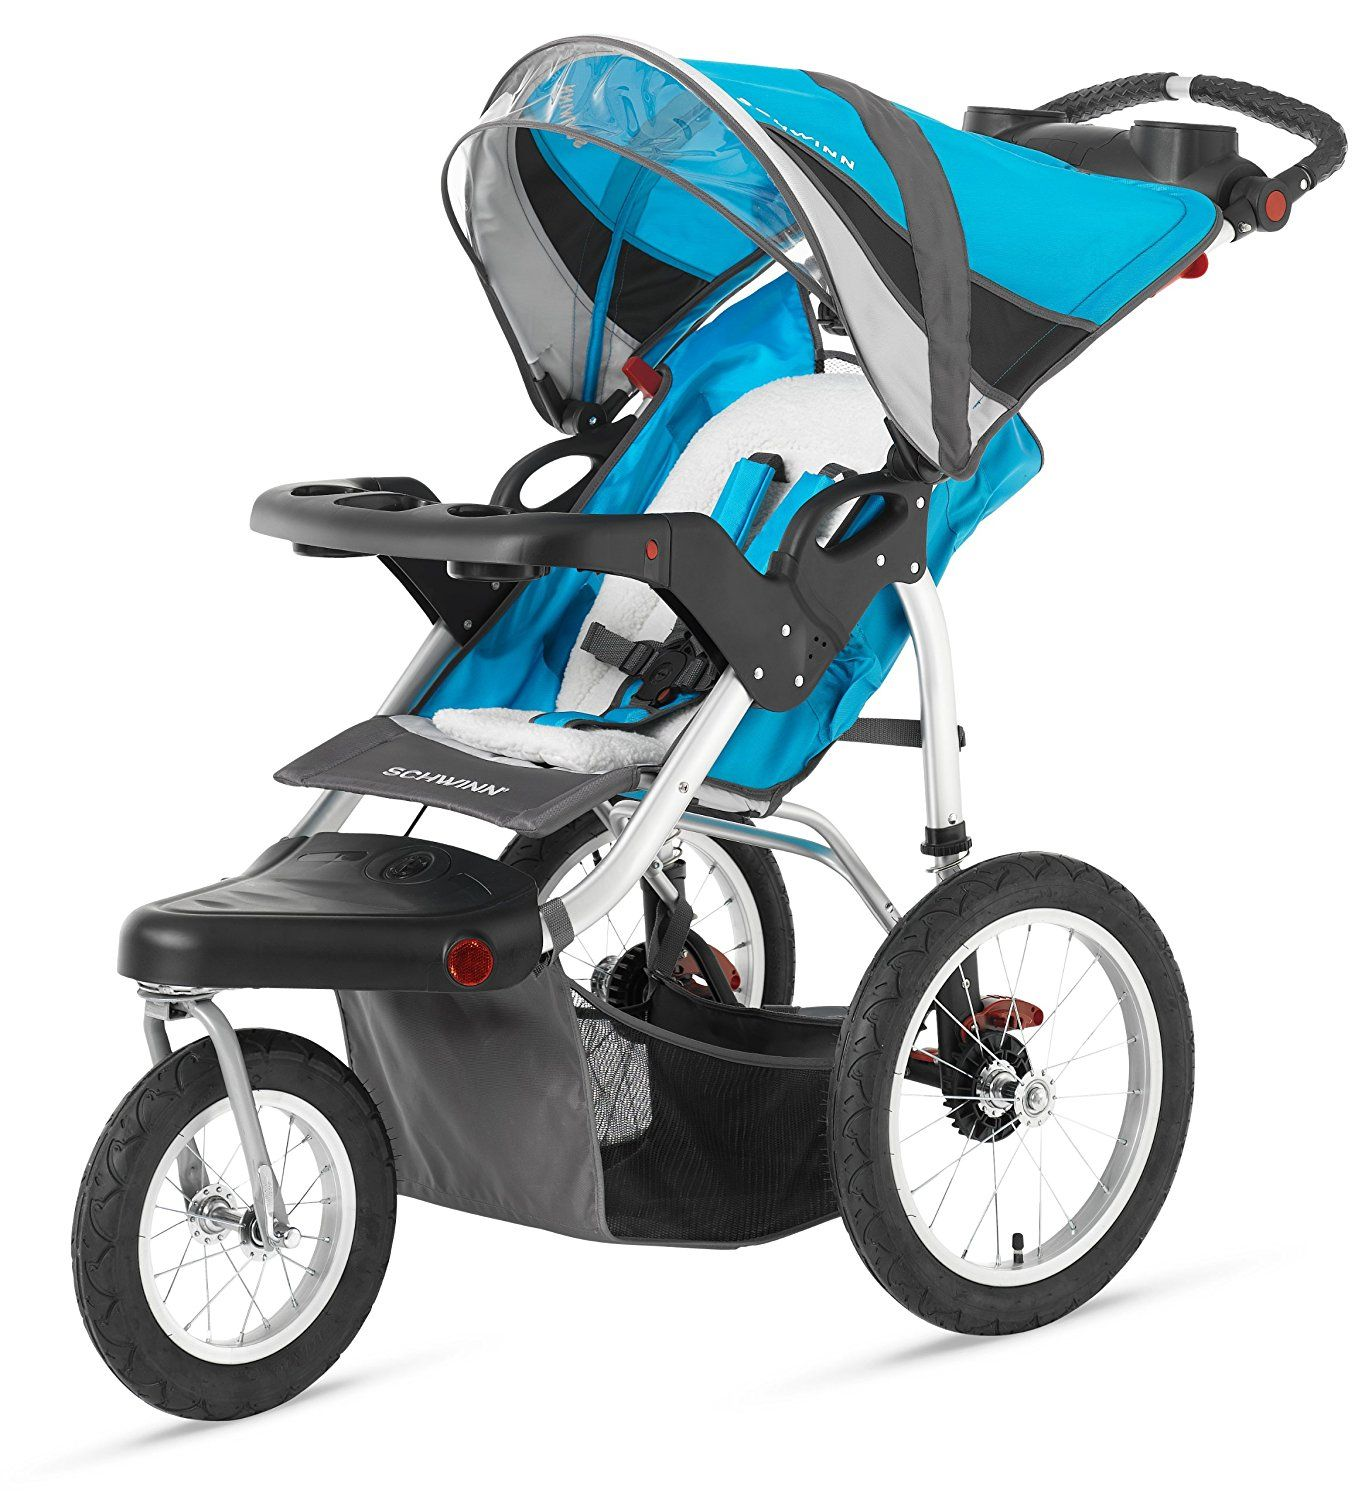 This is one of my favorite economic jogging stroller. It